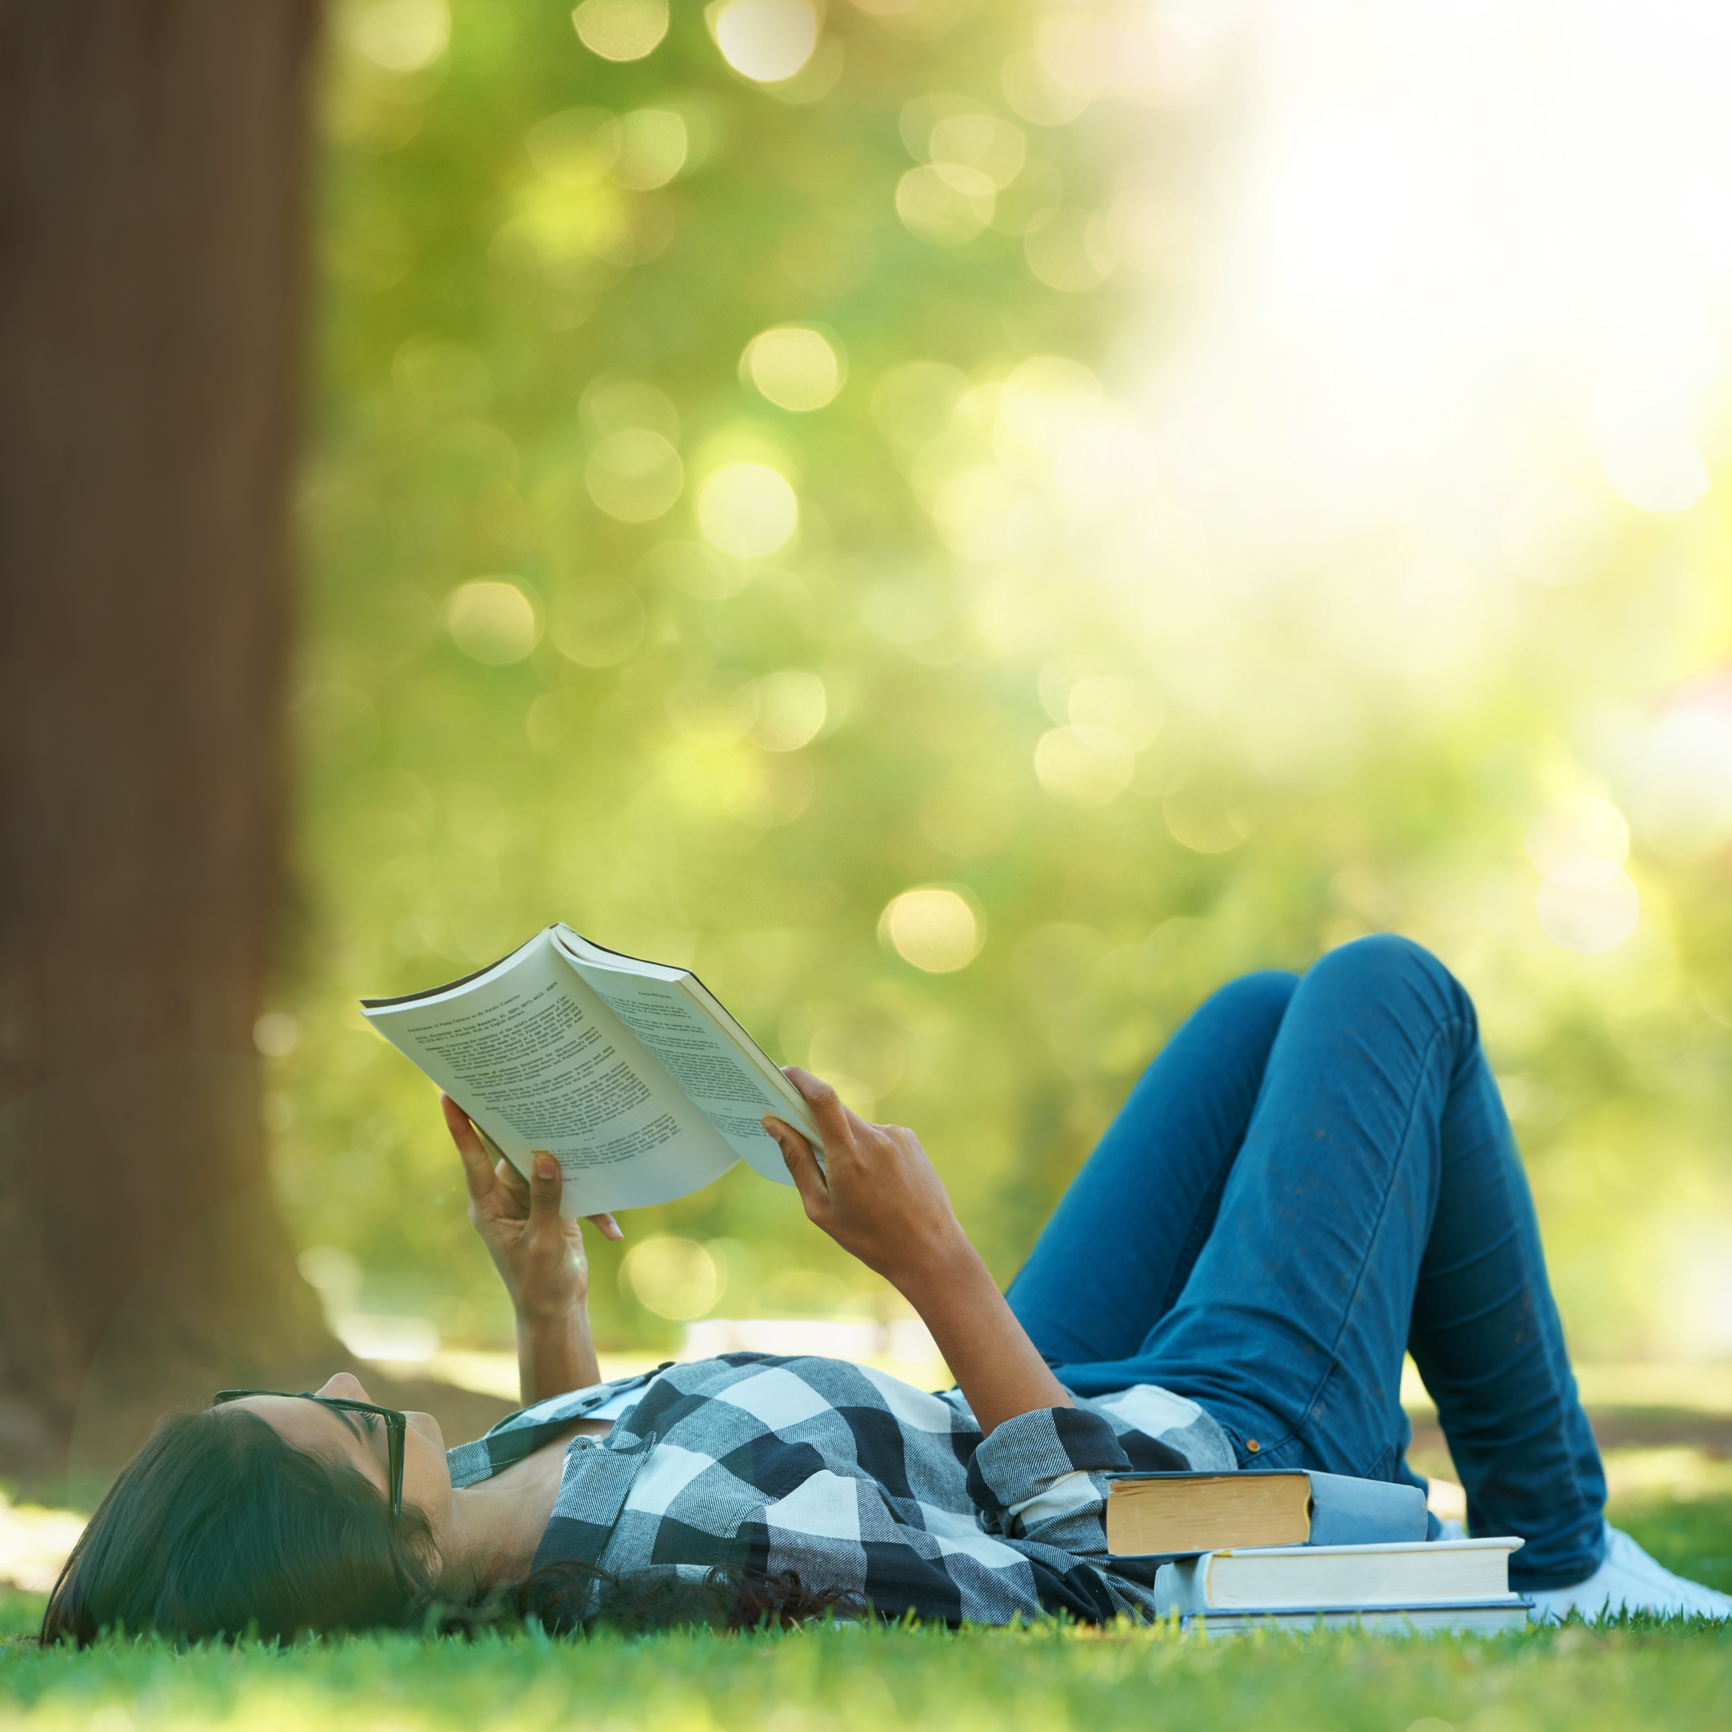 Woman lying in the grass and reading